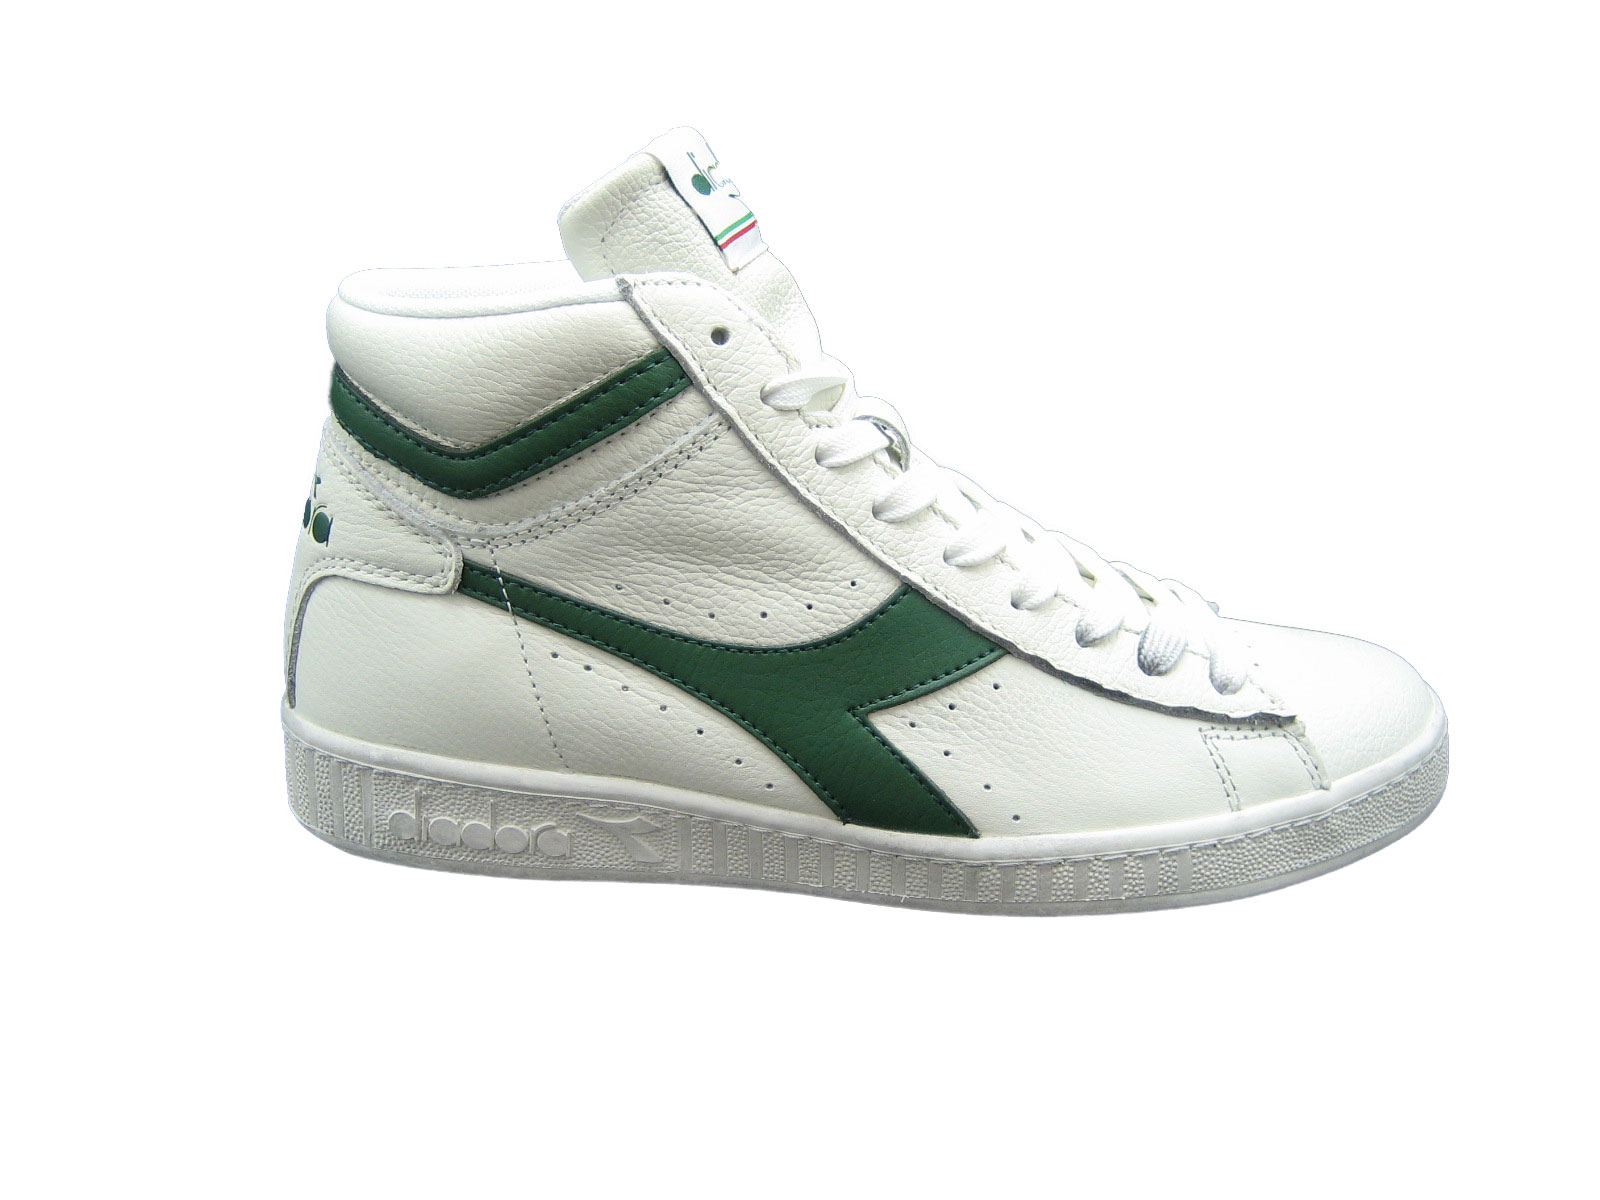 I20 Diadora Game Highc1161 Whitegreen.jpg